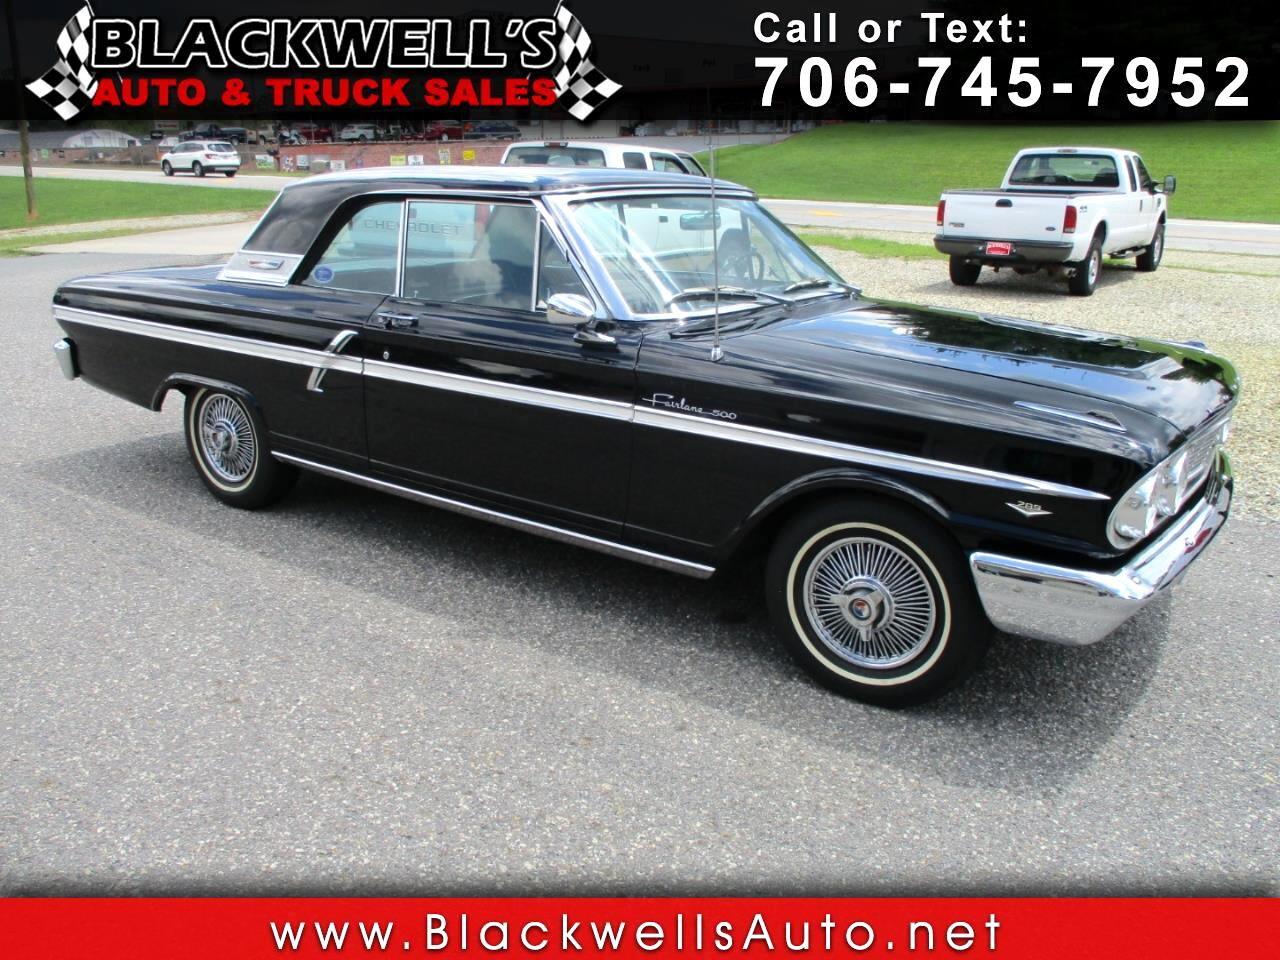 1964 Ford Fairlane 500 2 DR. HARDTOP